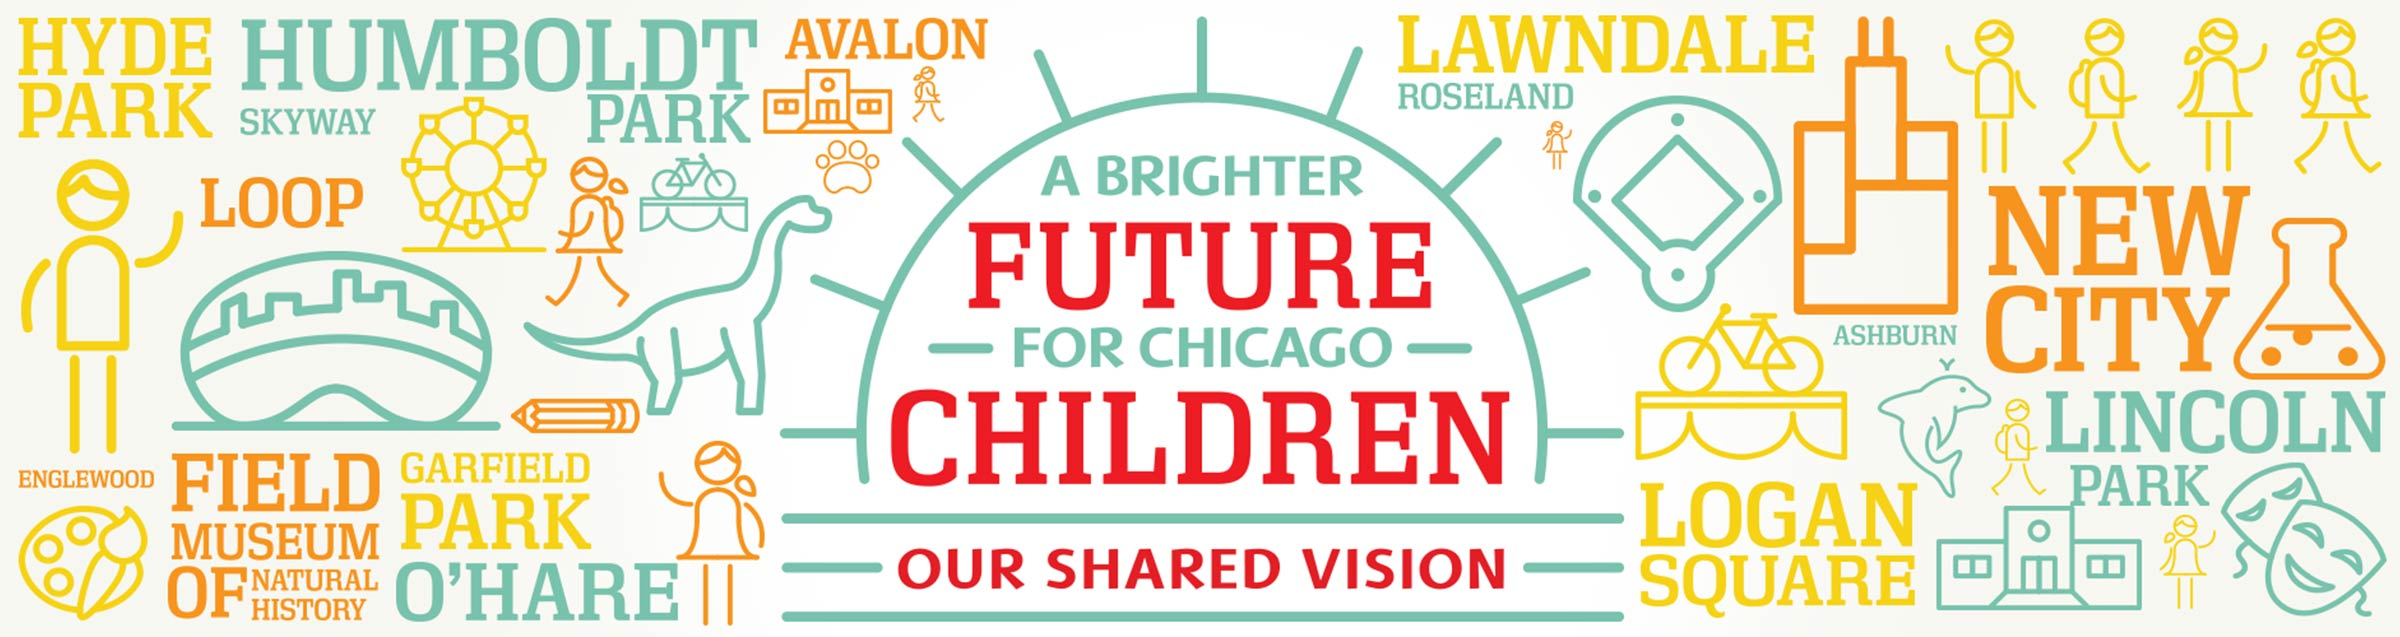 A Brighter Future for Chicago Children